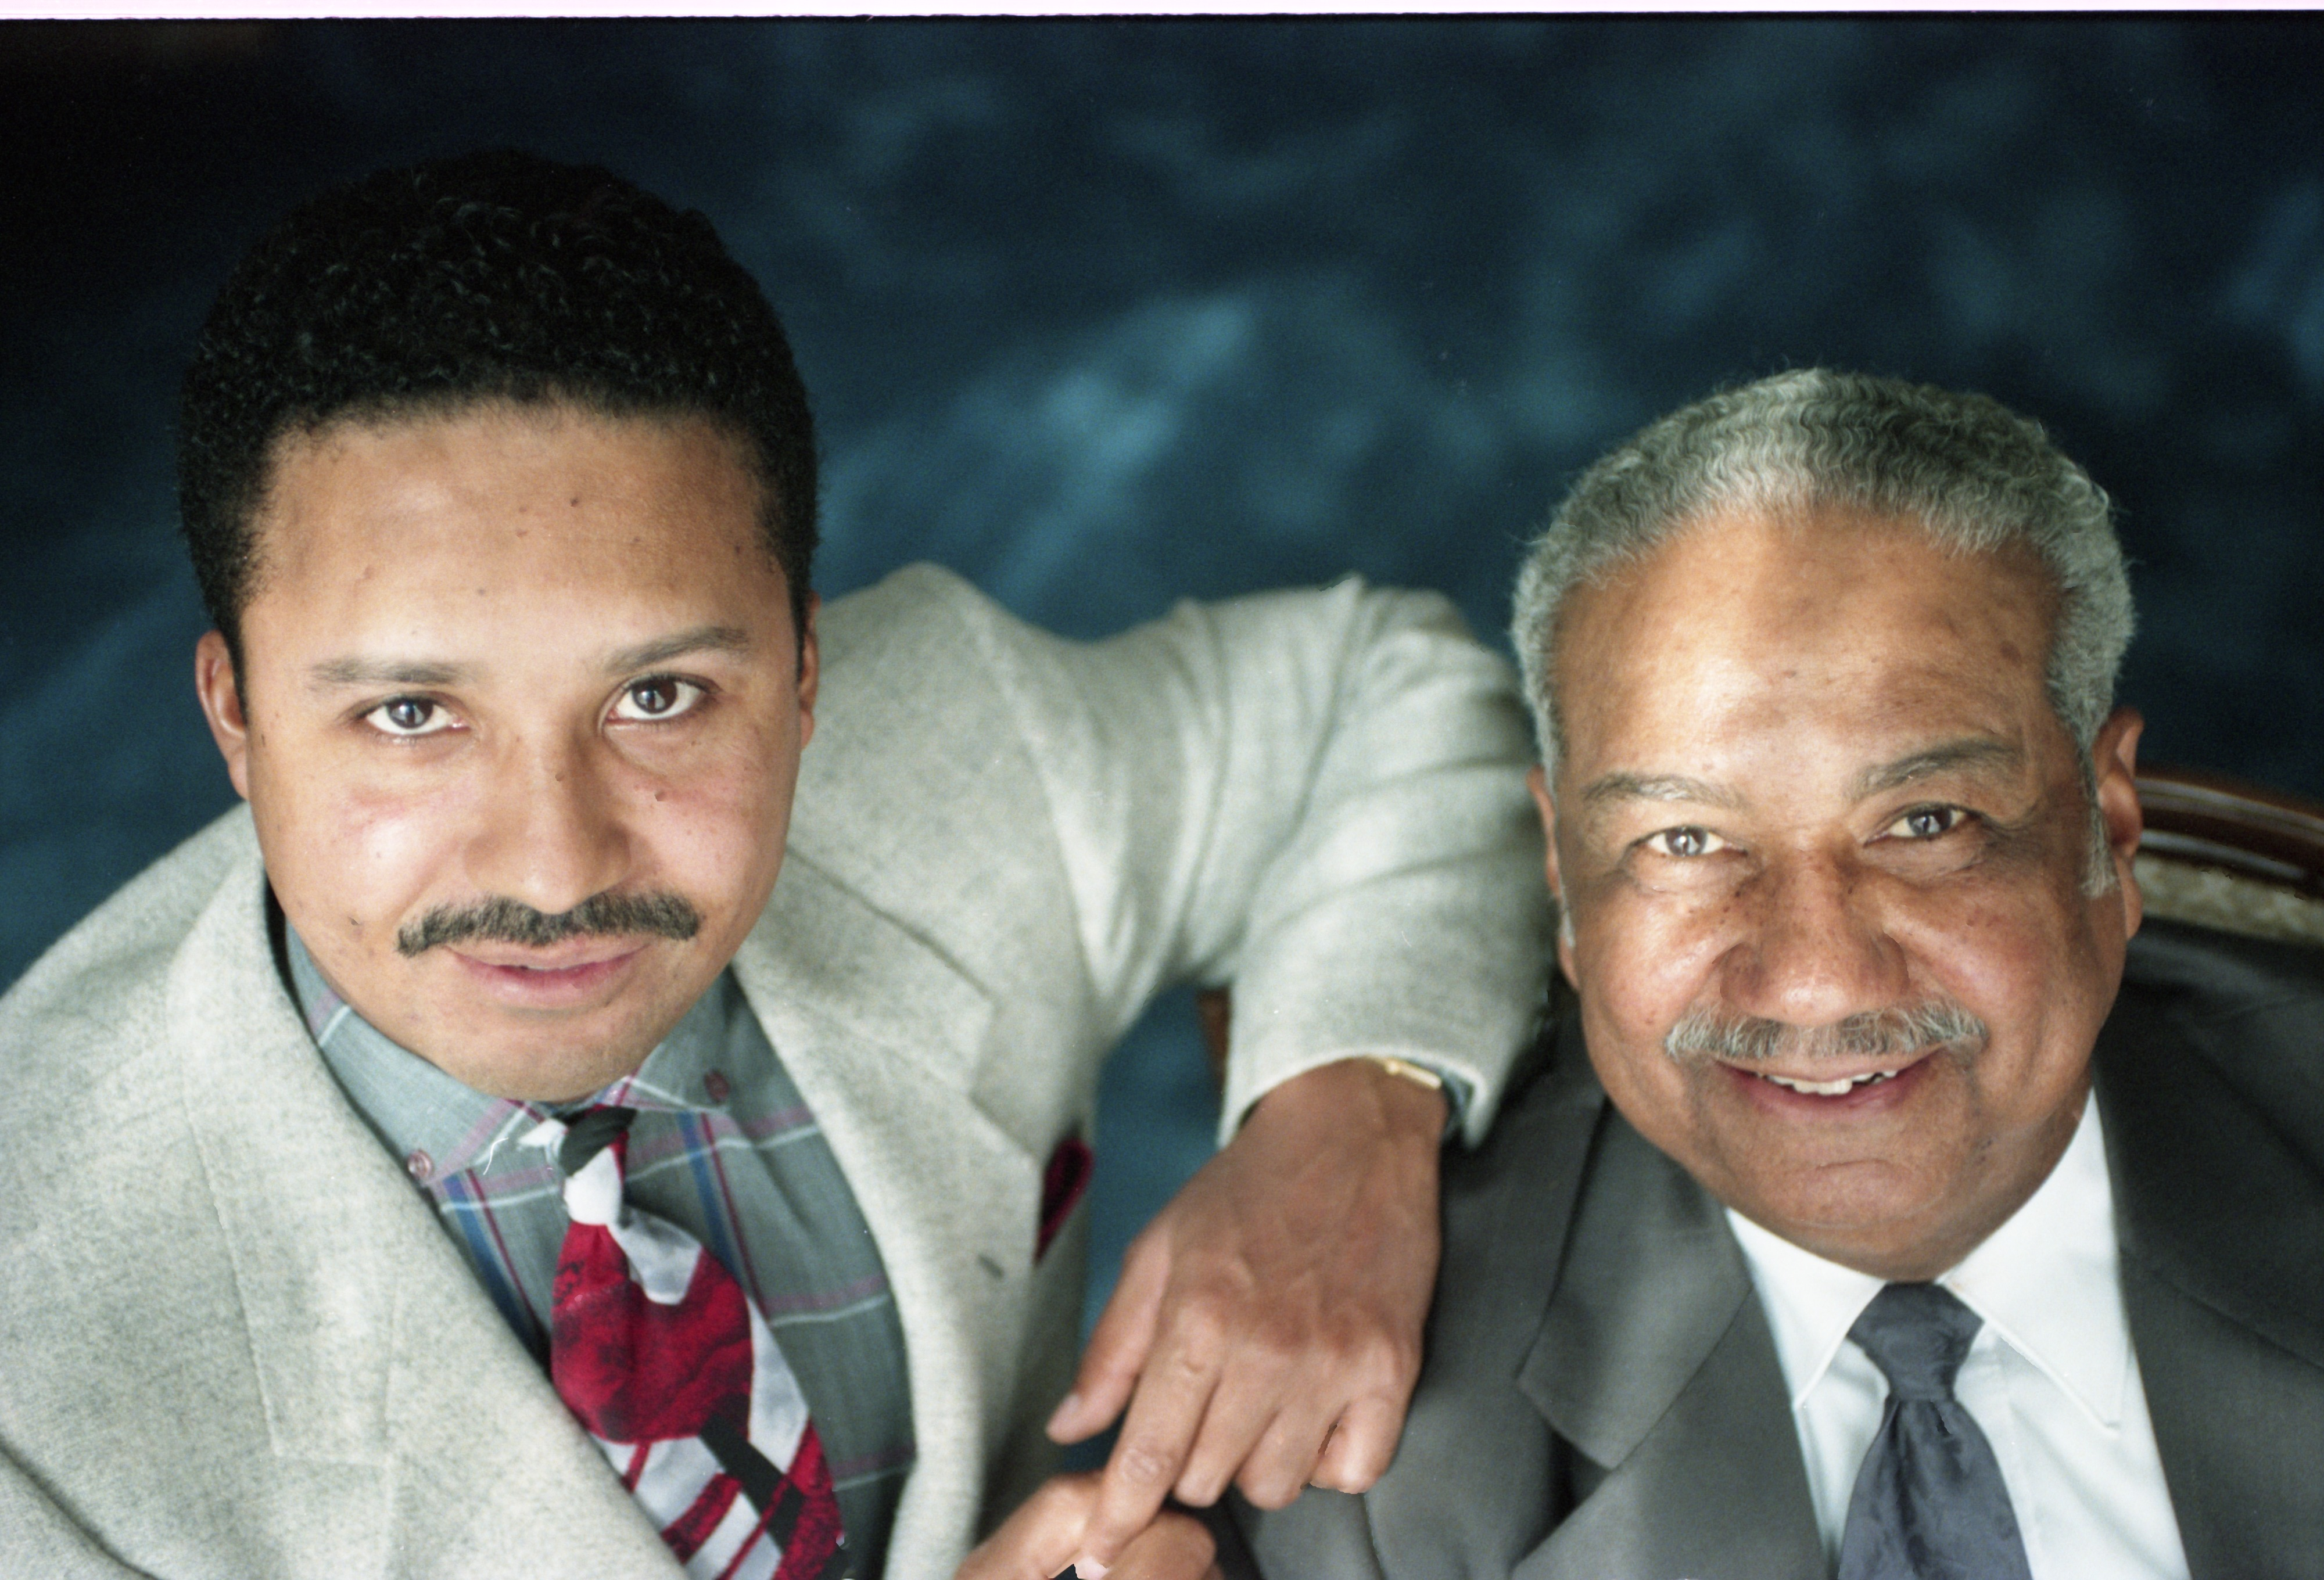 Dr. John C. Shelton, Noted Ypsilanti Doctor, With His Son, Dr. Craig Shelton, February 6, 1995 image